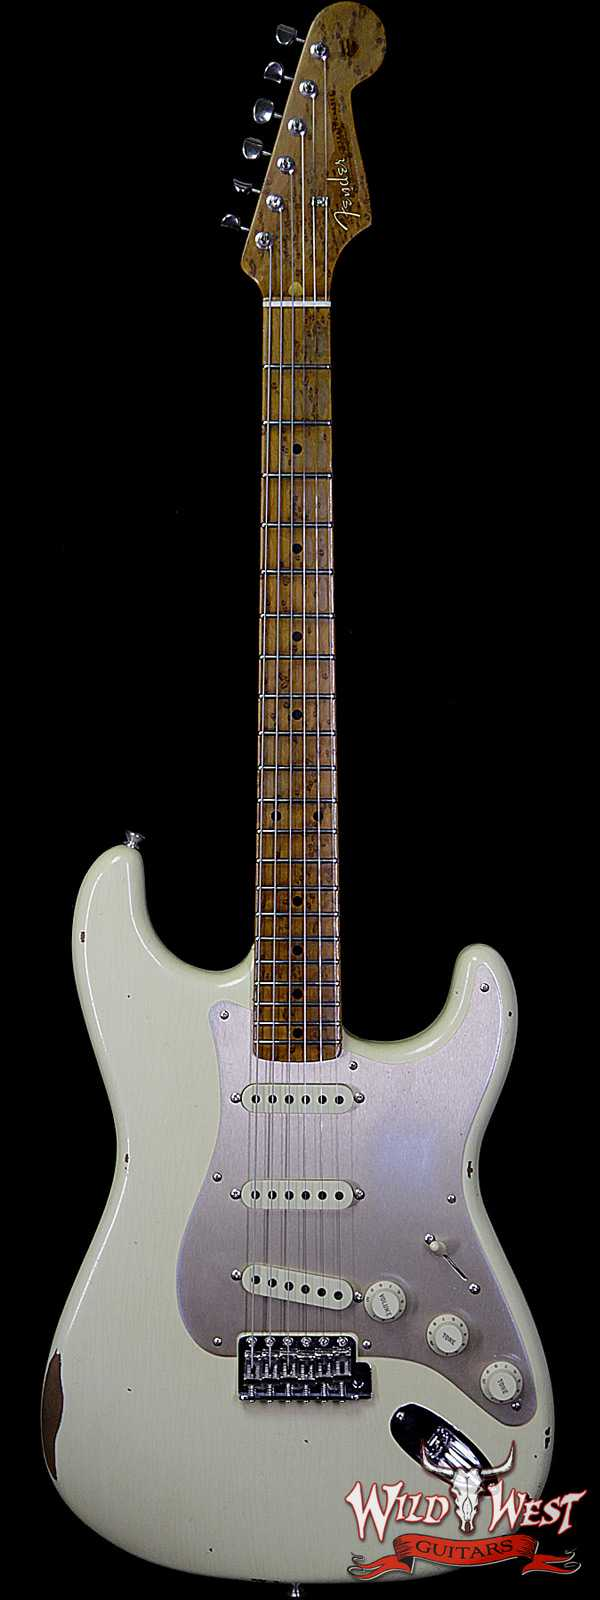 Fender Custom Shop 1956 Roasted Stratocaster Relic AAA Birdseye Maple Neck & Fingerboard Aged Vintage White